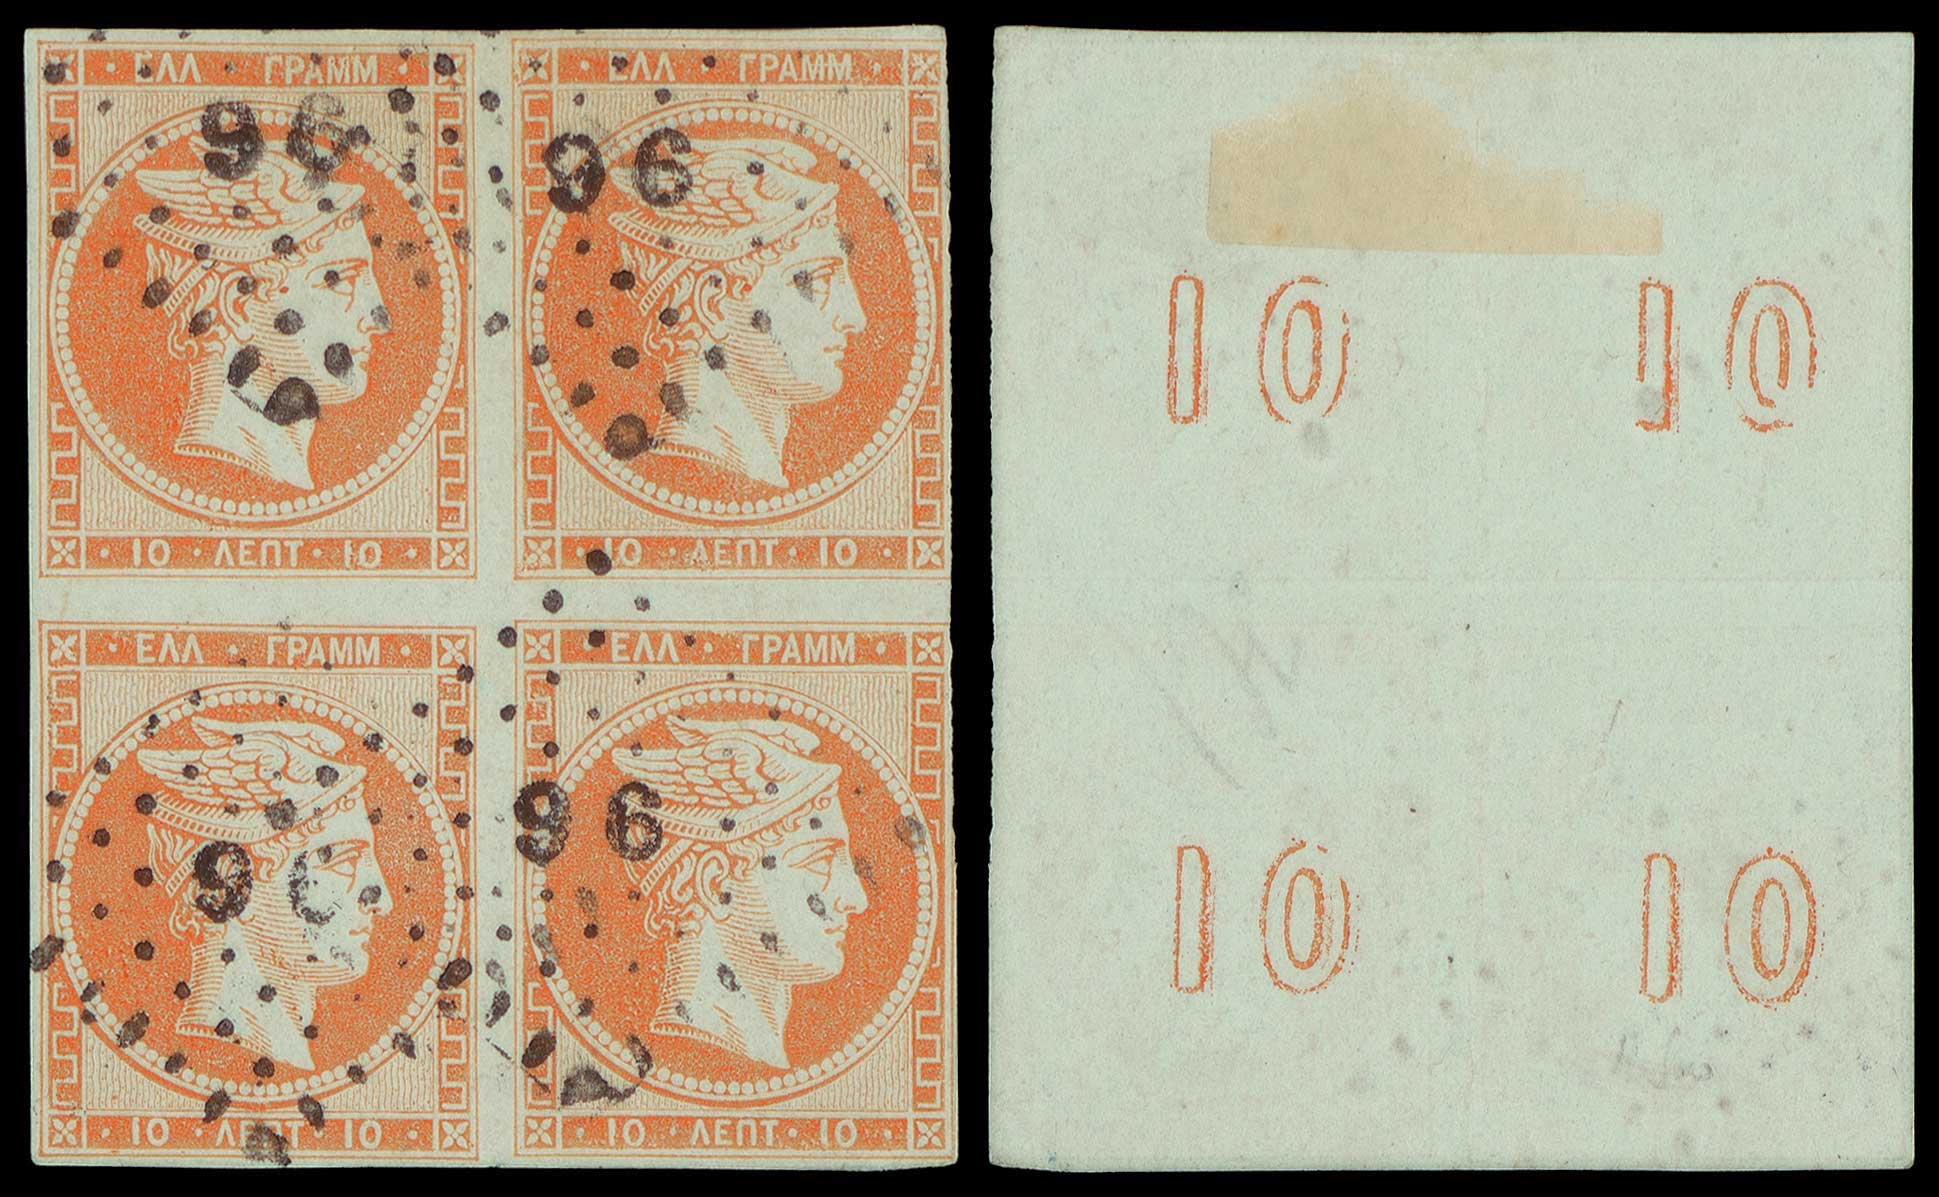 Lot 142 - -  LARGE HERMES HEAD 1867/1869 cleaned plates. -  A. Karamitsos Public & Live Internet Auction 666 Large Hermes Heads Exceptional Stamps from Great Collections